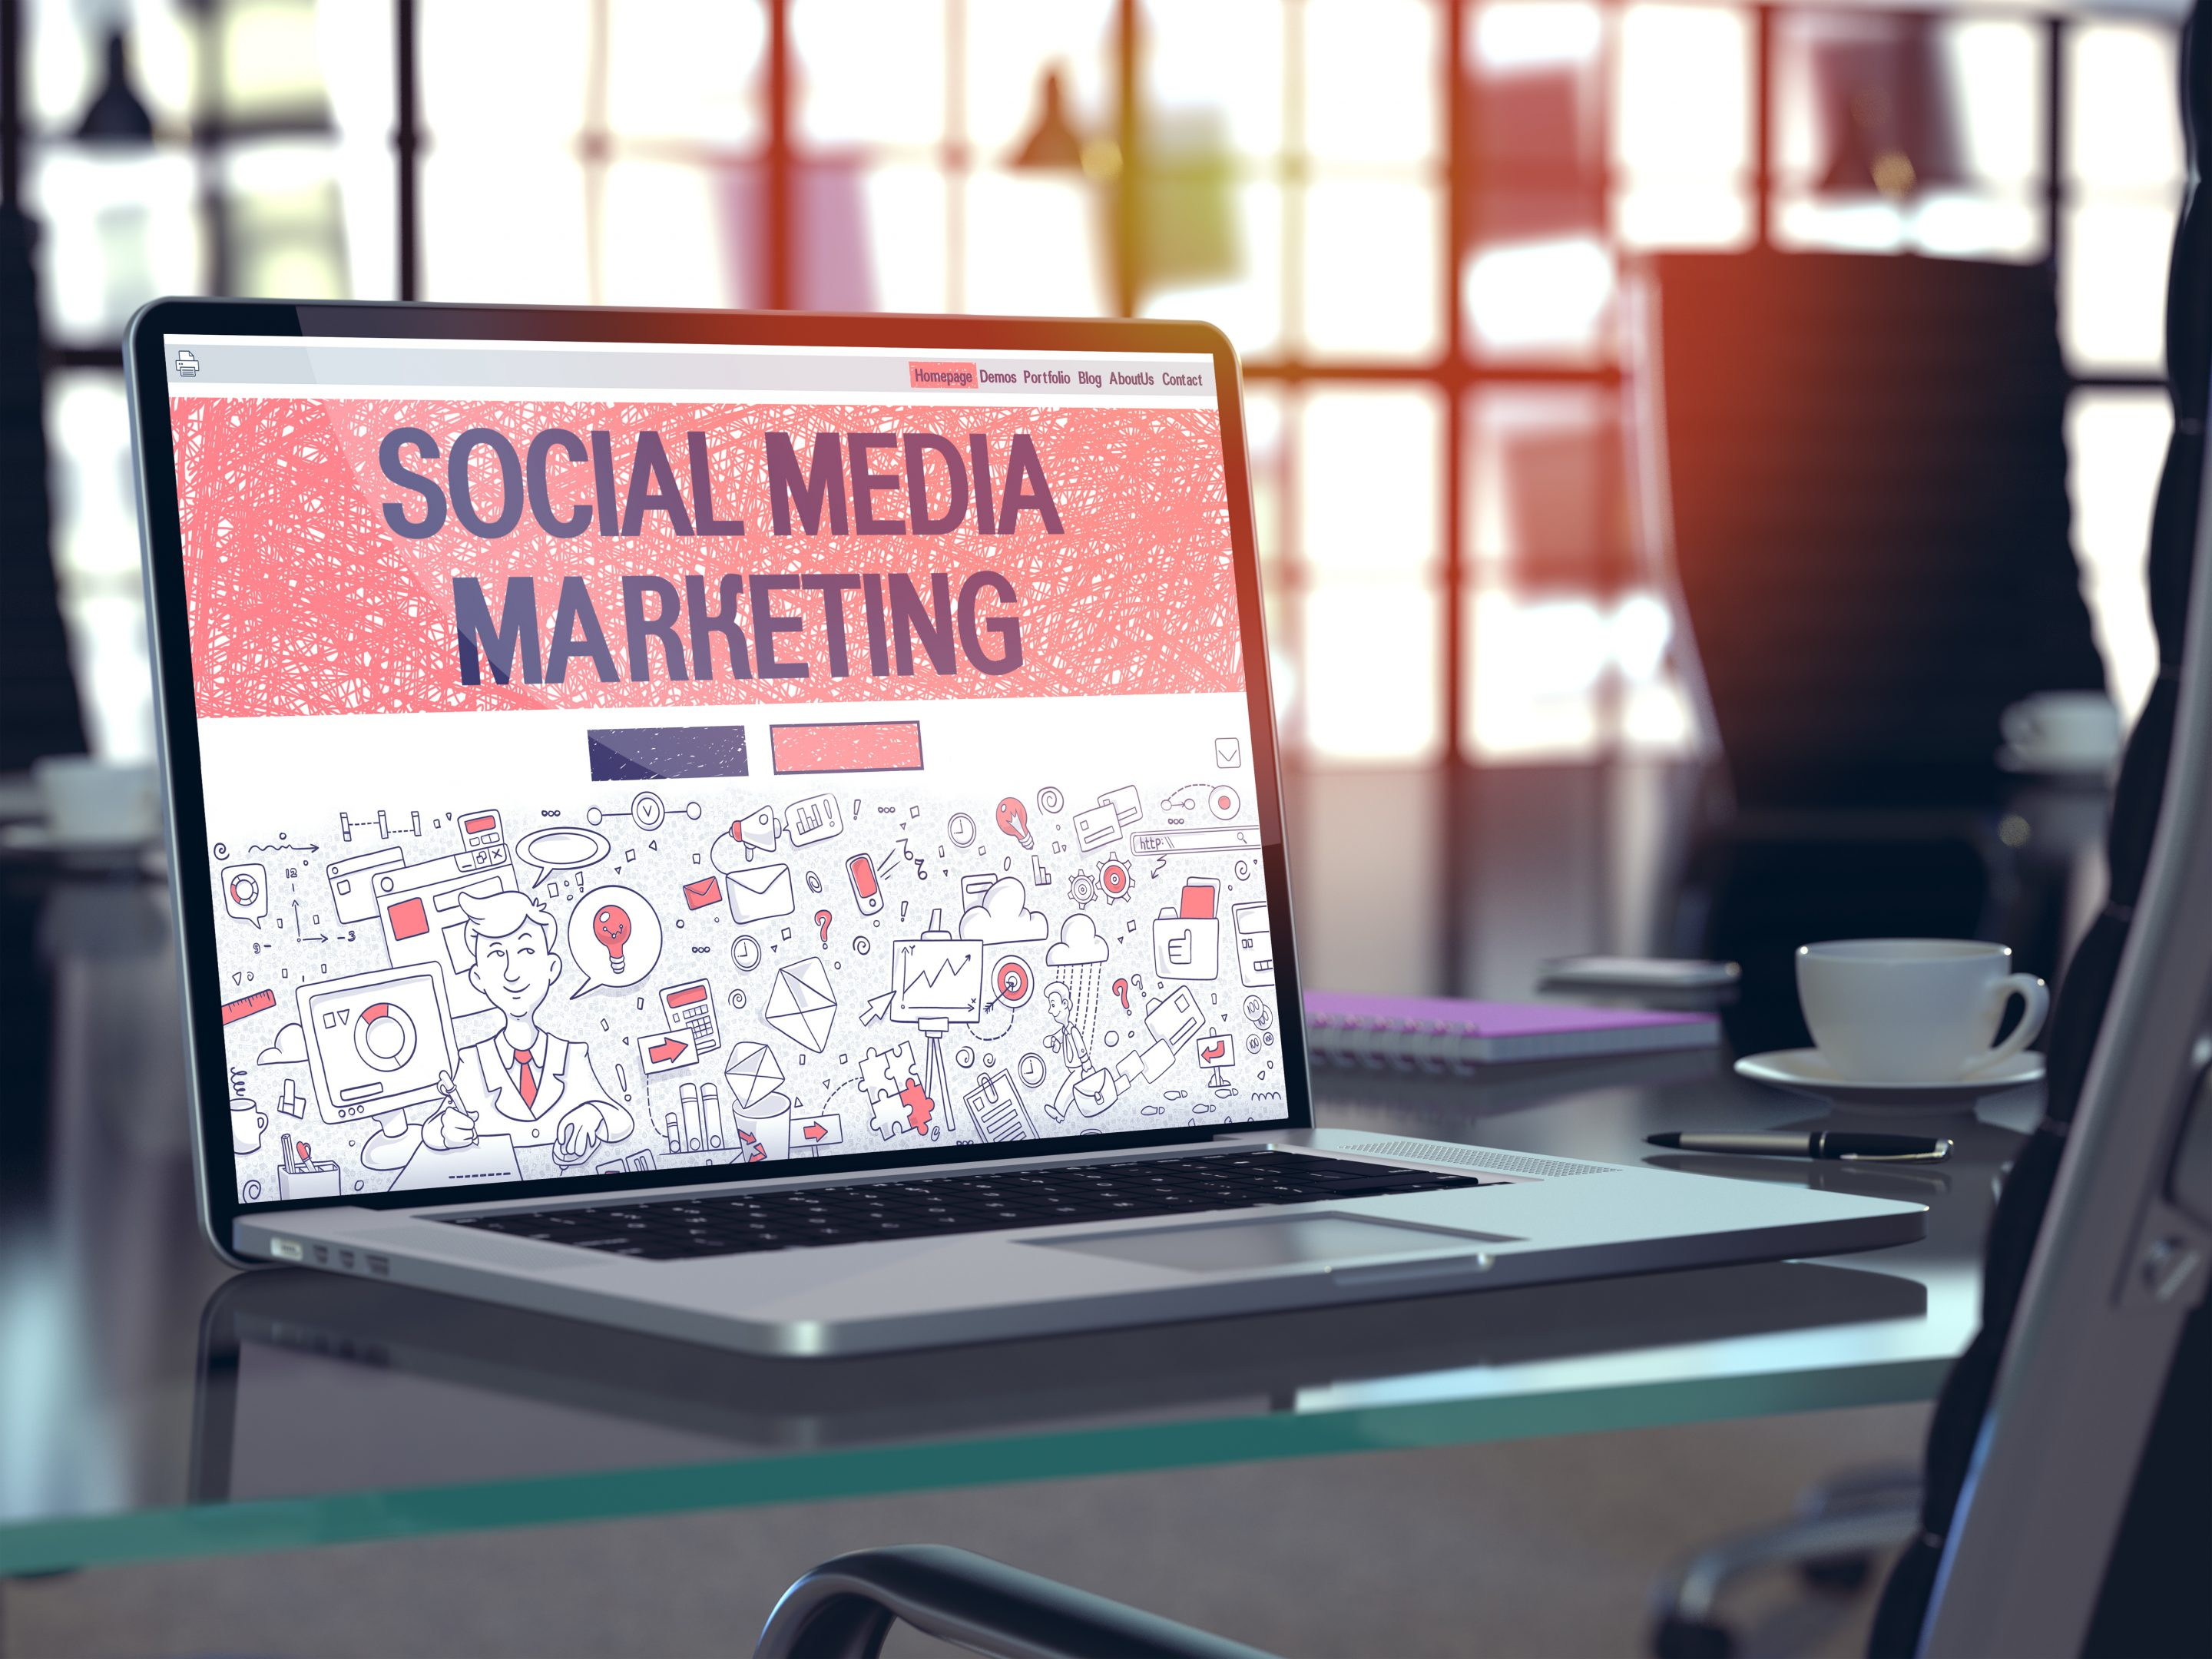 Video: How to Use Social Media For Marketing